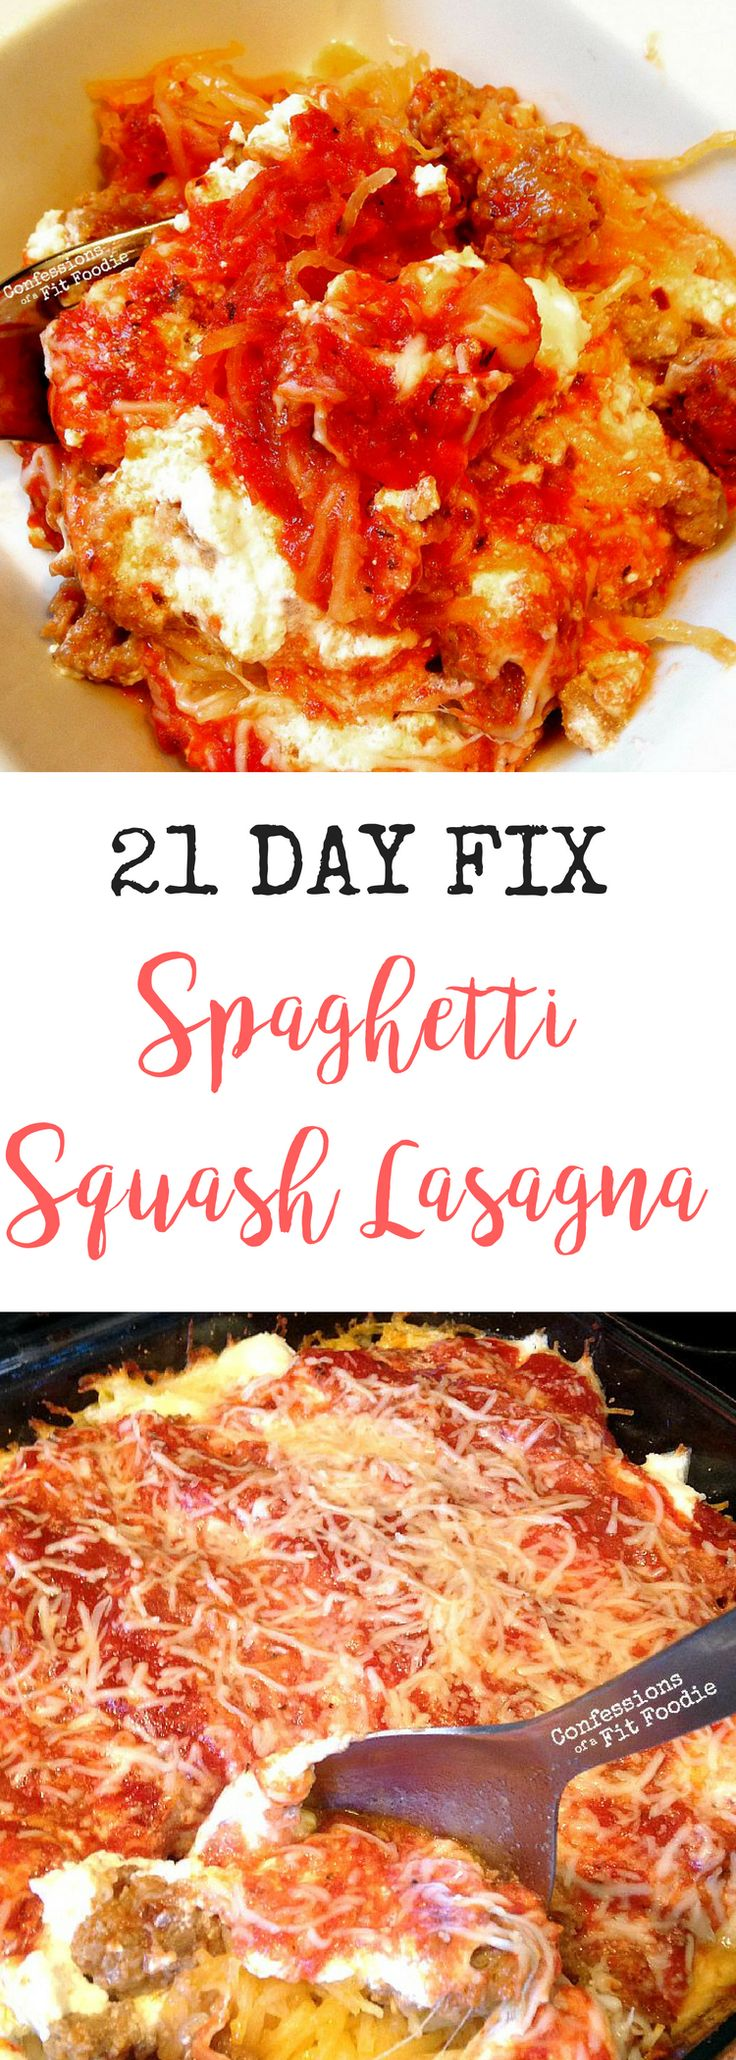 Low Carb Deliciousness! 21 Day Fix Spaghetti Squash Lasagna